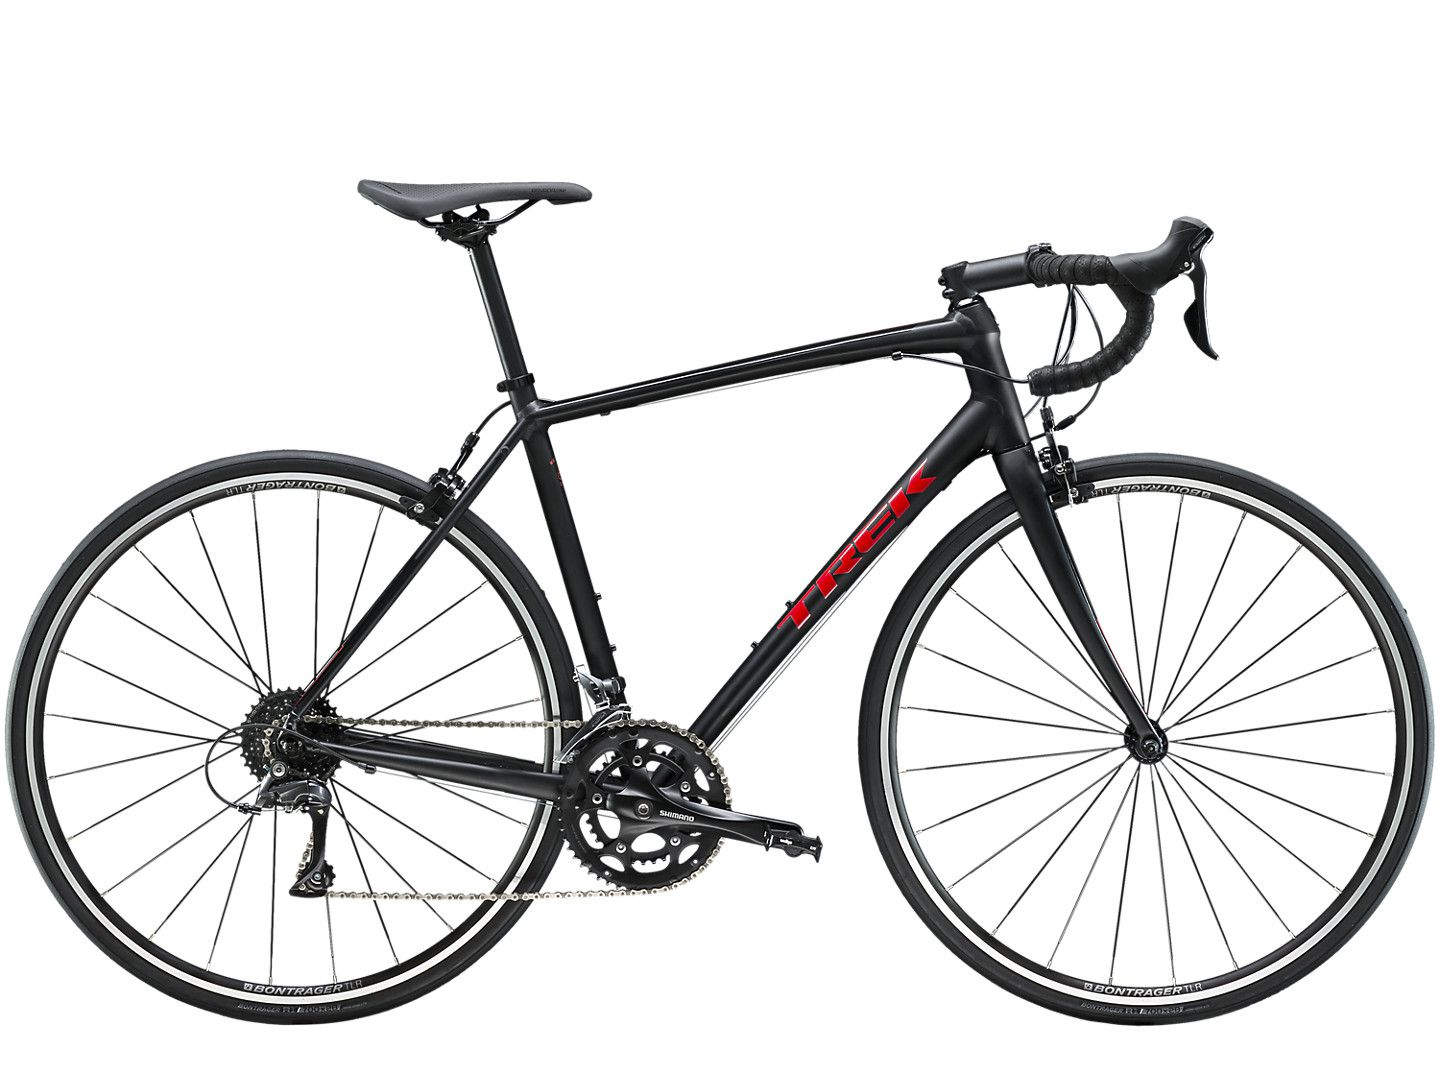 Bicicleta Speed Trek Domane AL 2